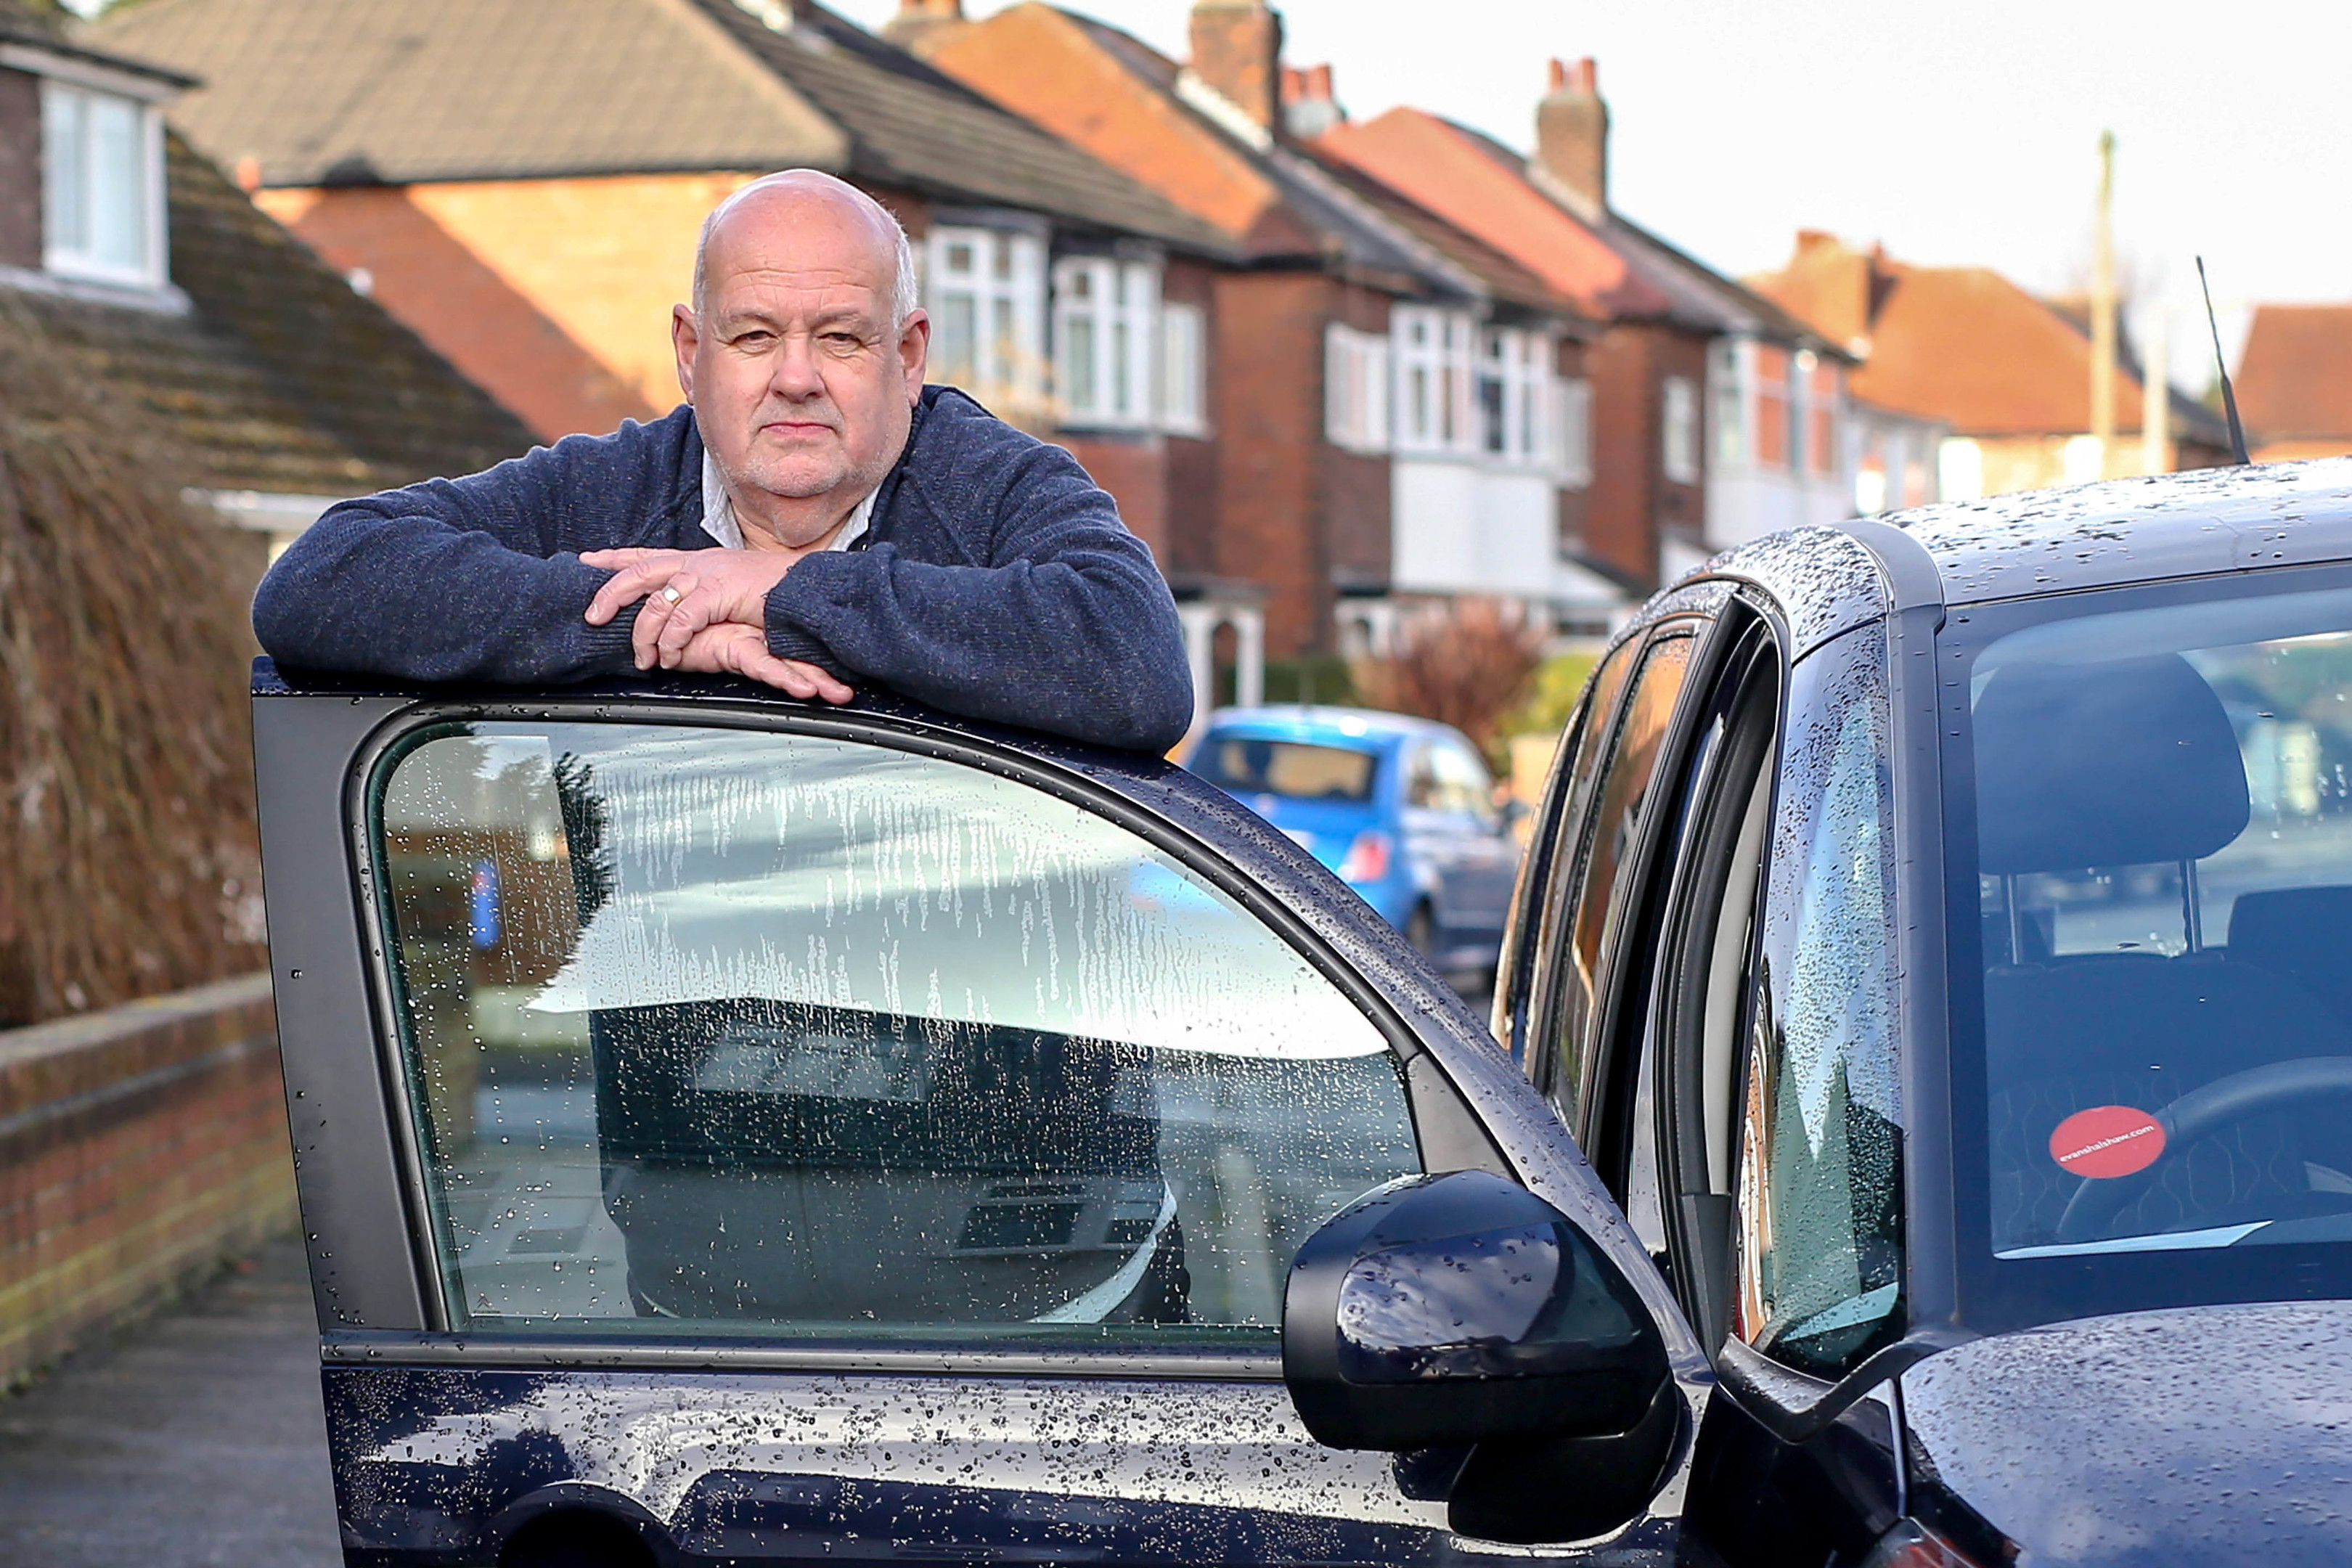 Ian Butterworth, from Stockport, was forced to pay for car insurance when he booked to hire a car in the UK and then again when he picked the car up at the airport in Alicante. (Jacob King/Mercury Press)